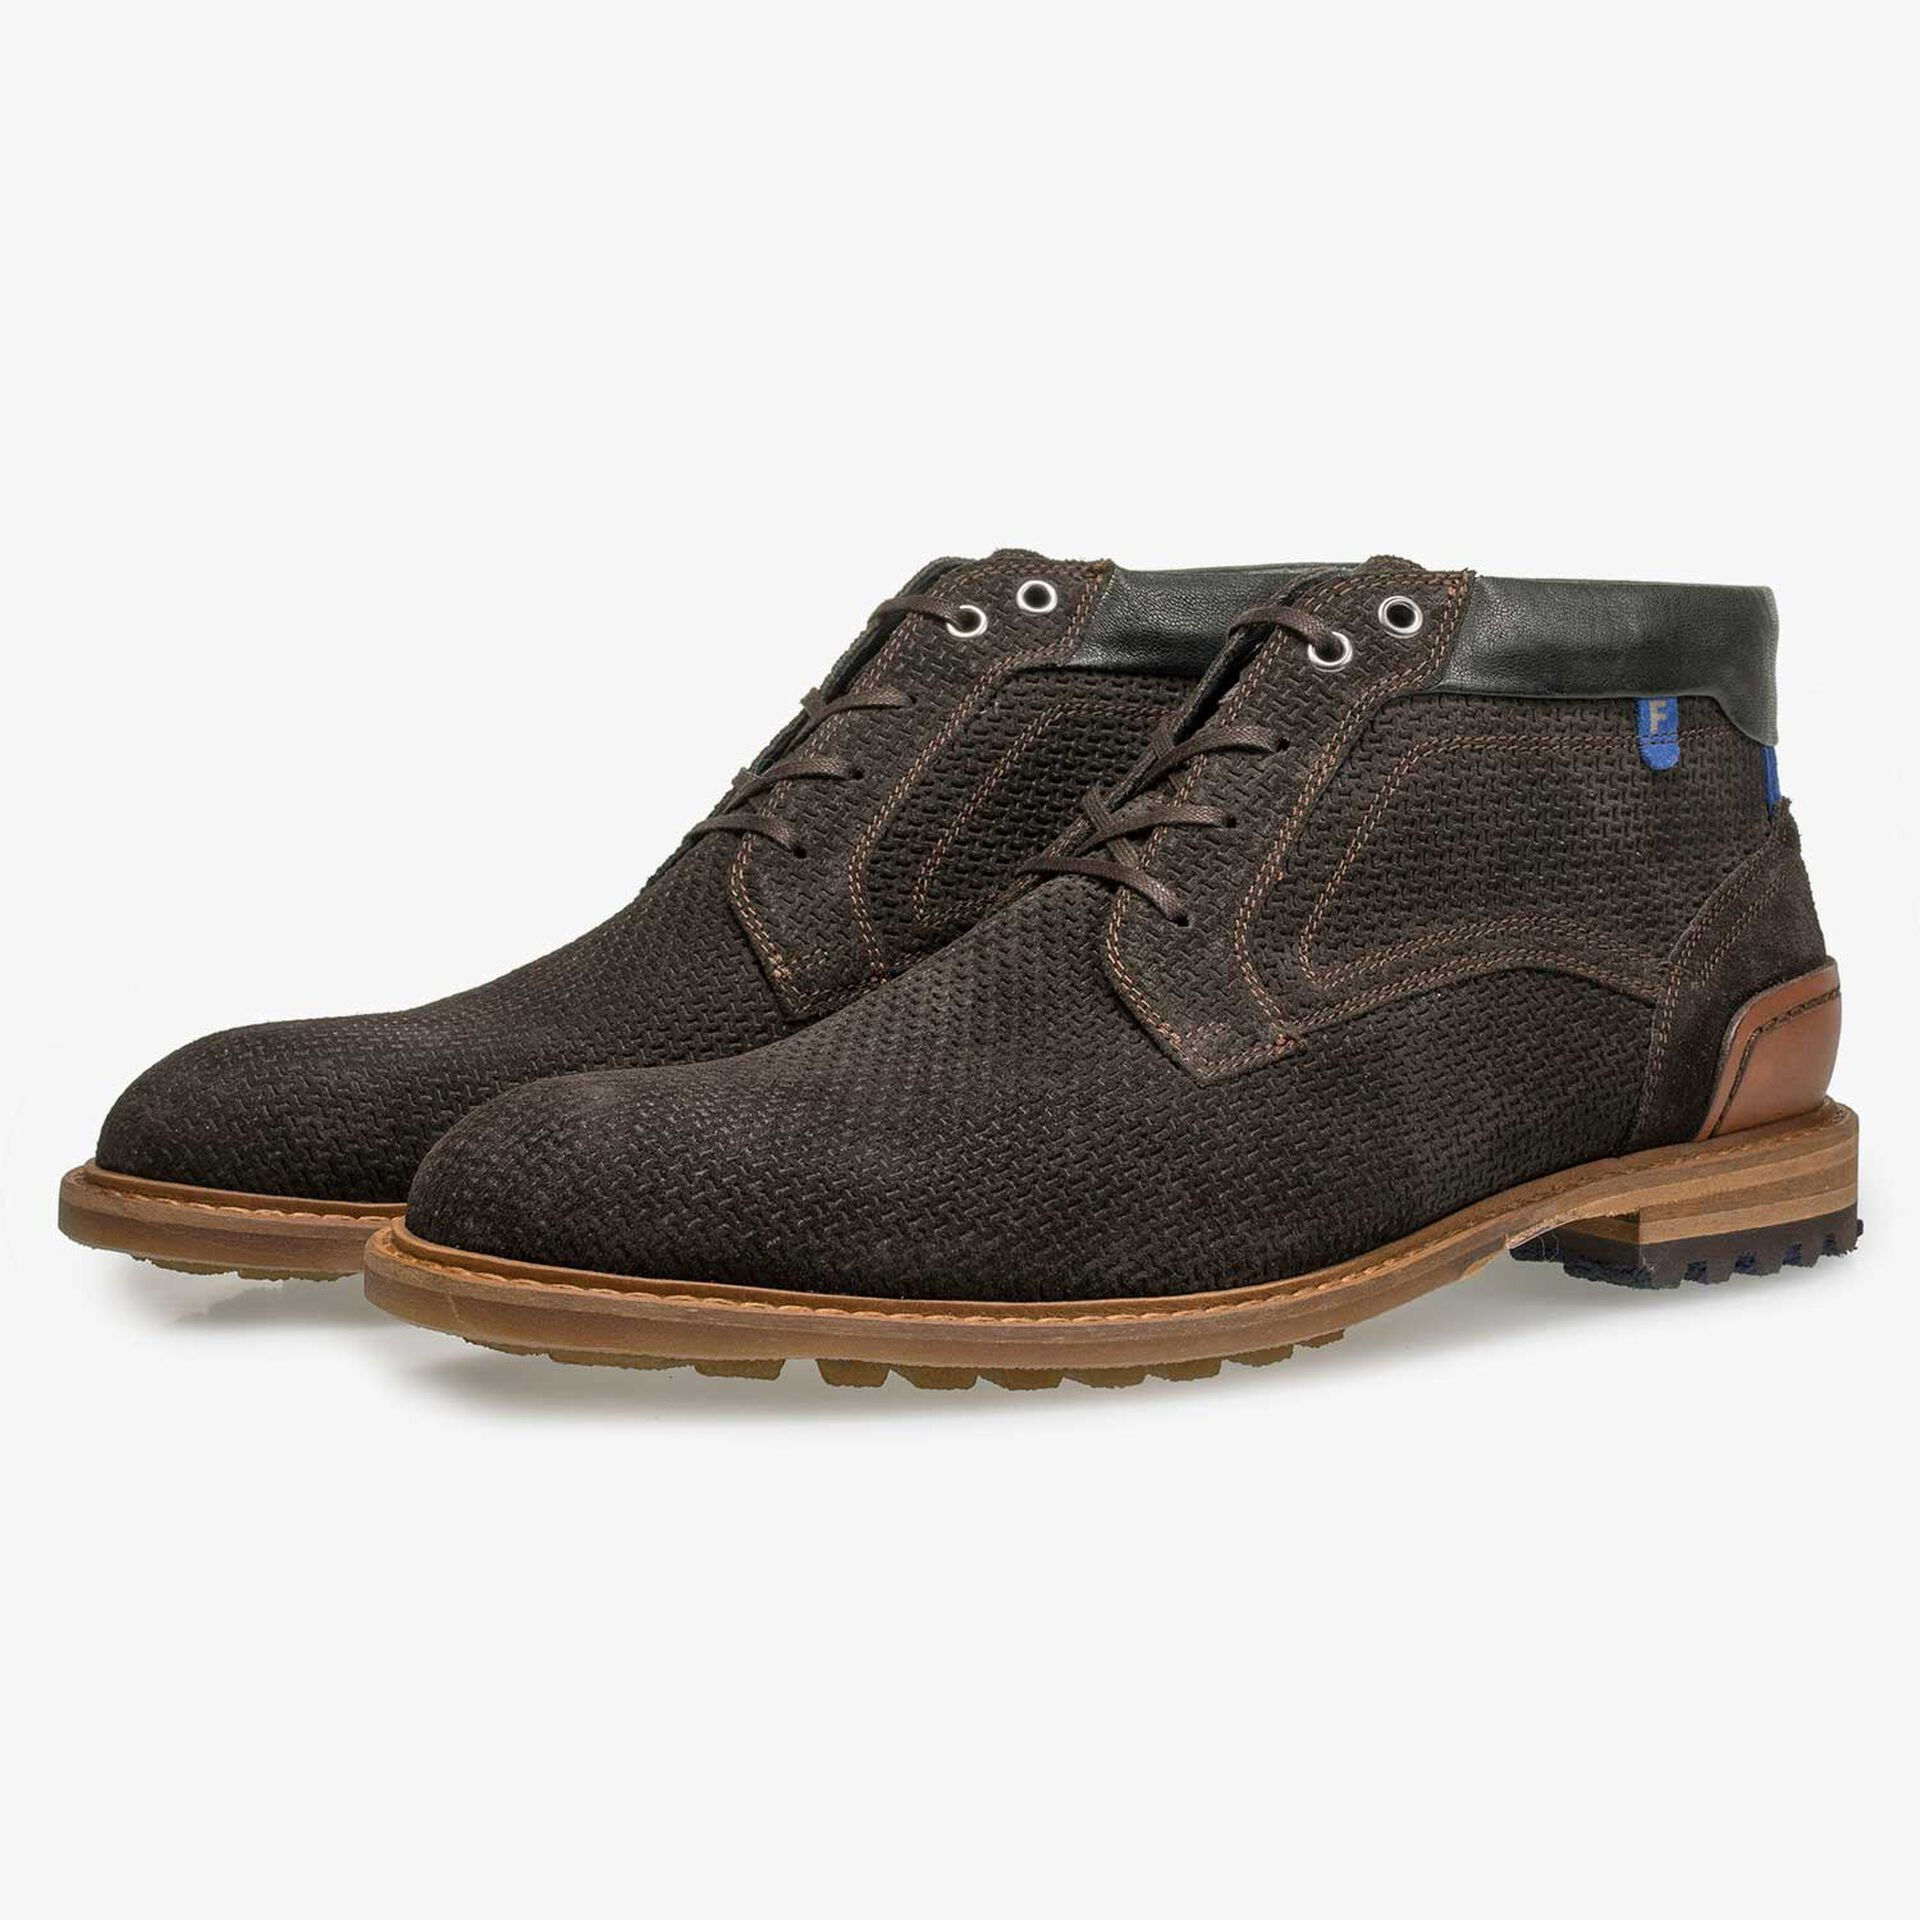 Brown suede leather lace boot with structural pattern